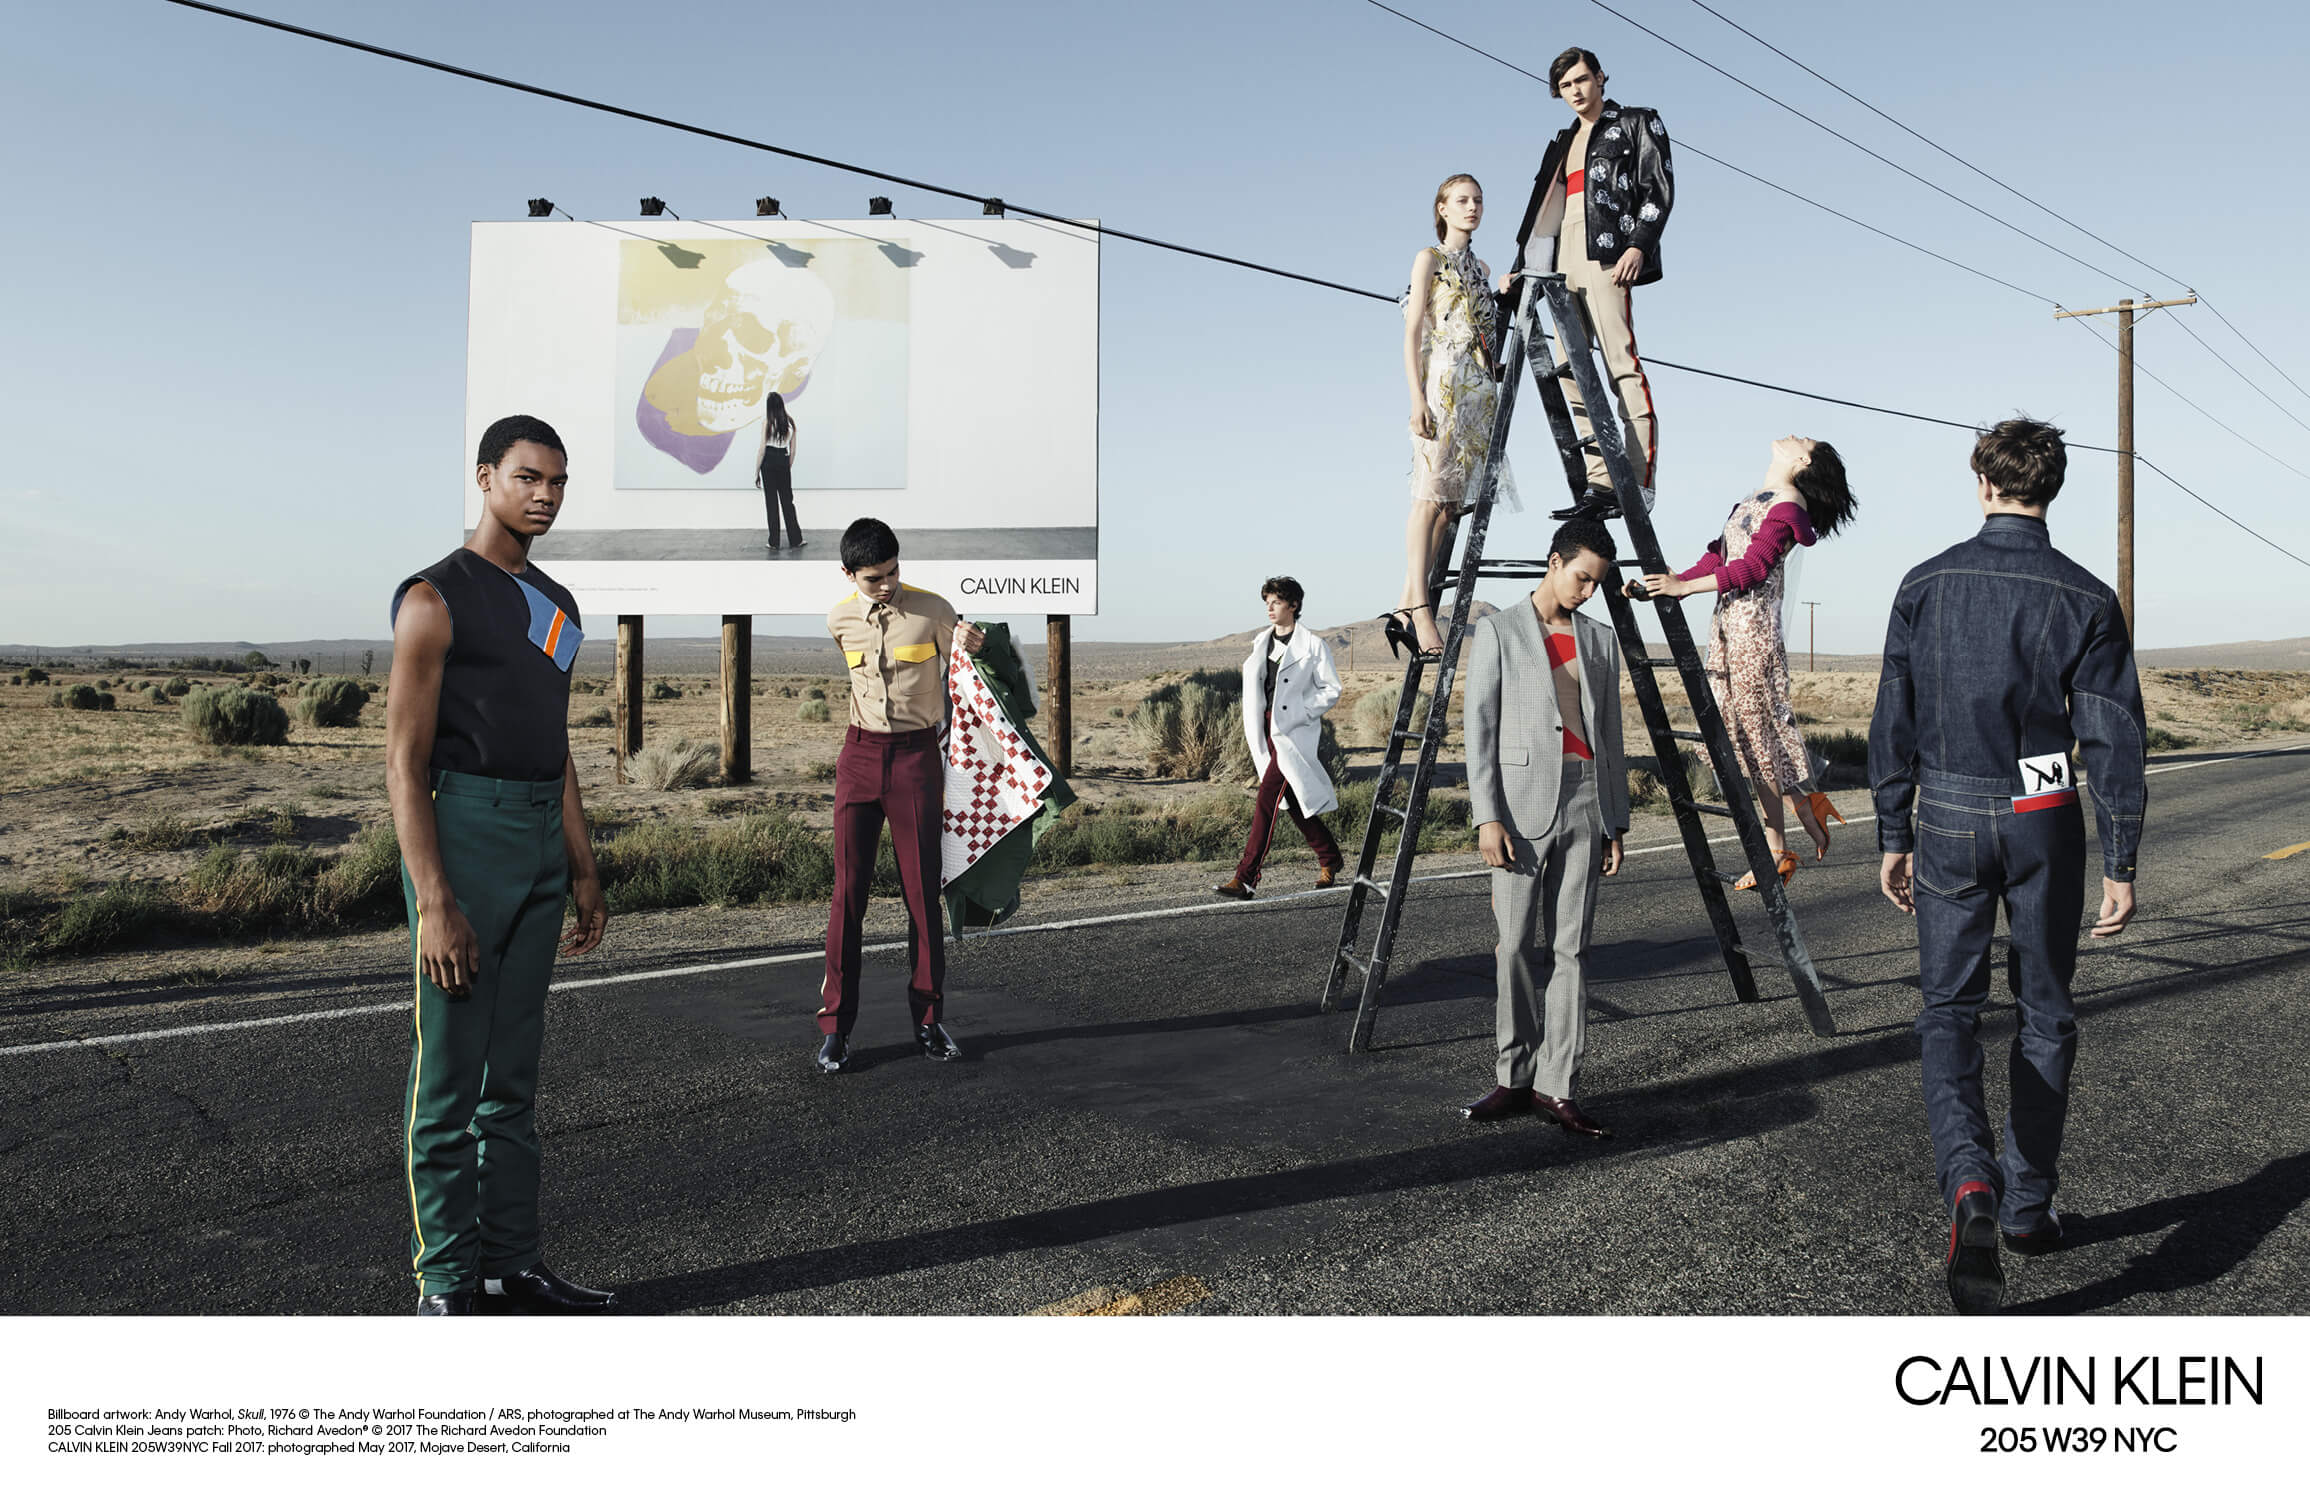 calvin-klein-205w39nyc-f17-campaign_ph_willy-vanderperre-04